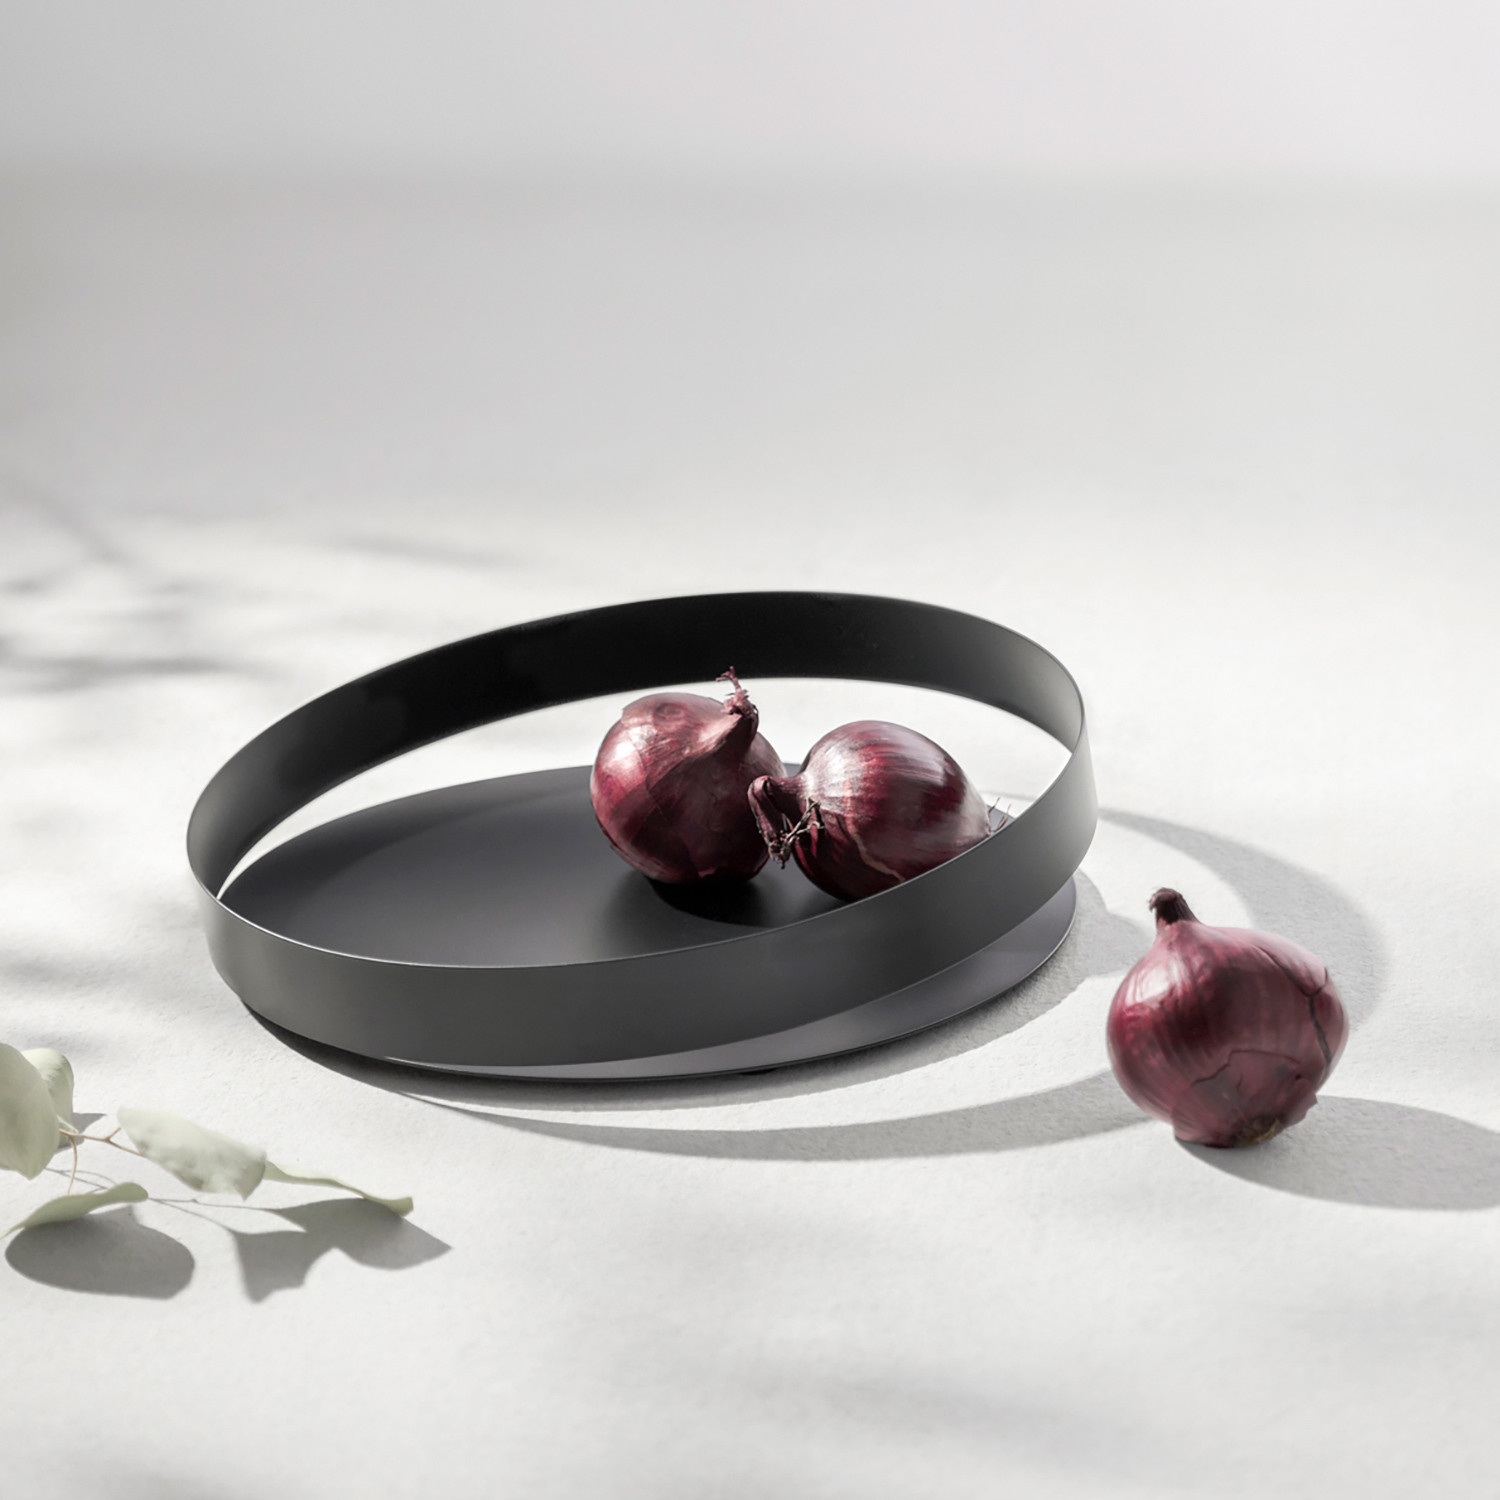 Modern Metal Fruit Bowl Orbis Fruit Bowl Silver Beyond Object Touch Of Modern